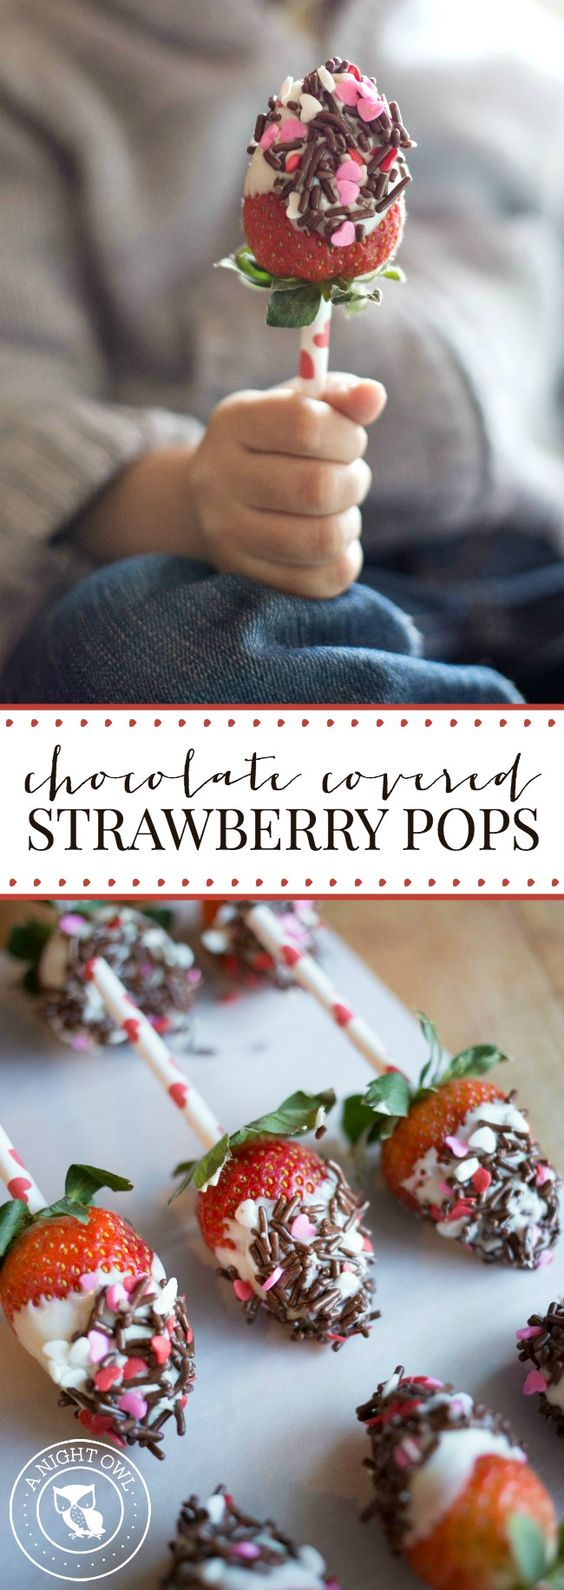 Chocolate Covered Strawberry Pops - sweet treats that are perfect for parties and easy to make!: